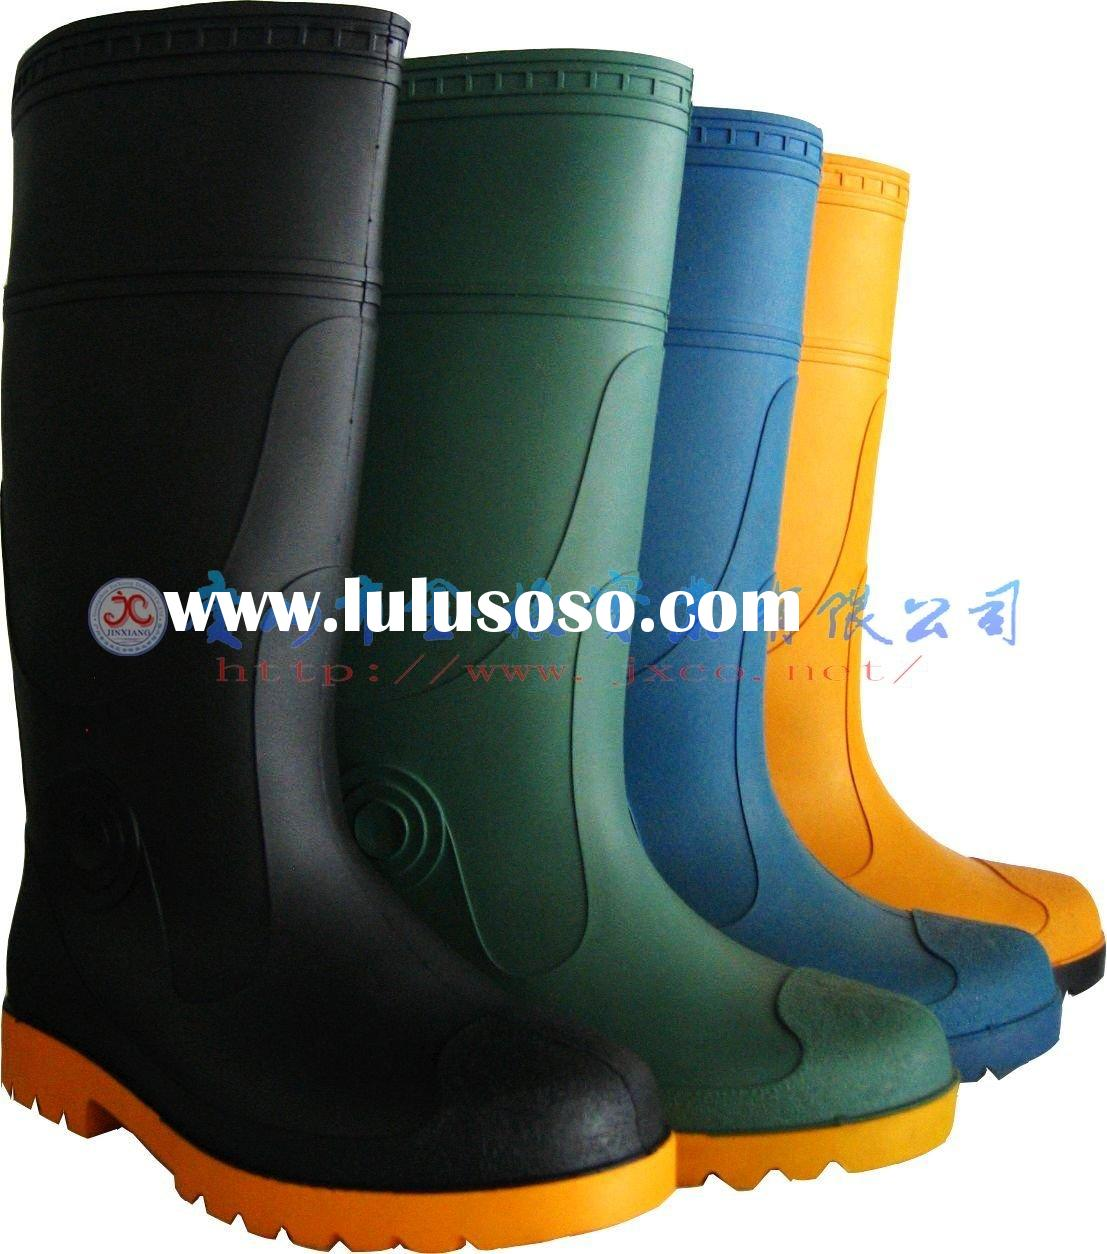 Steel toe &sole safety boots